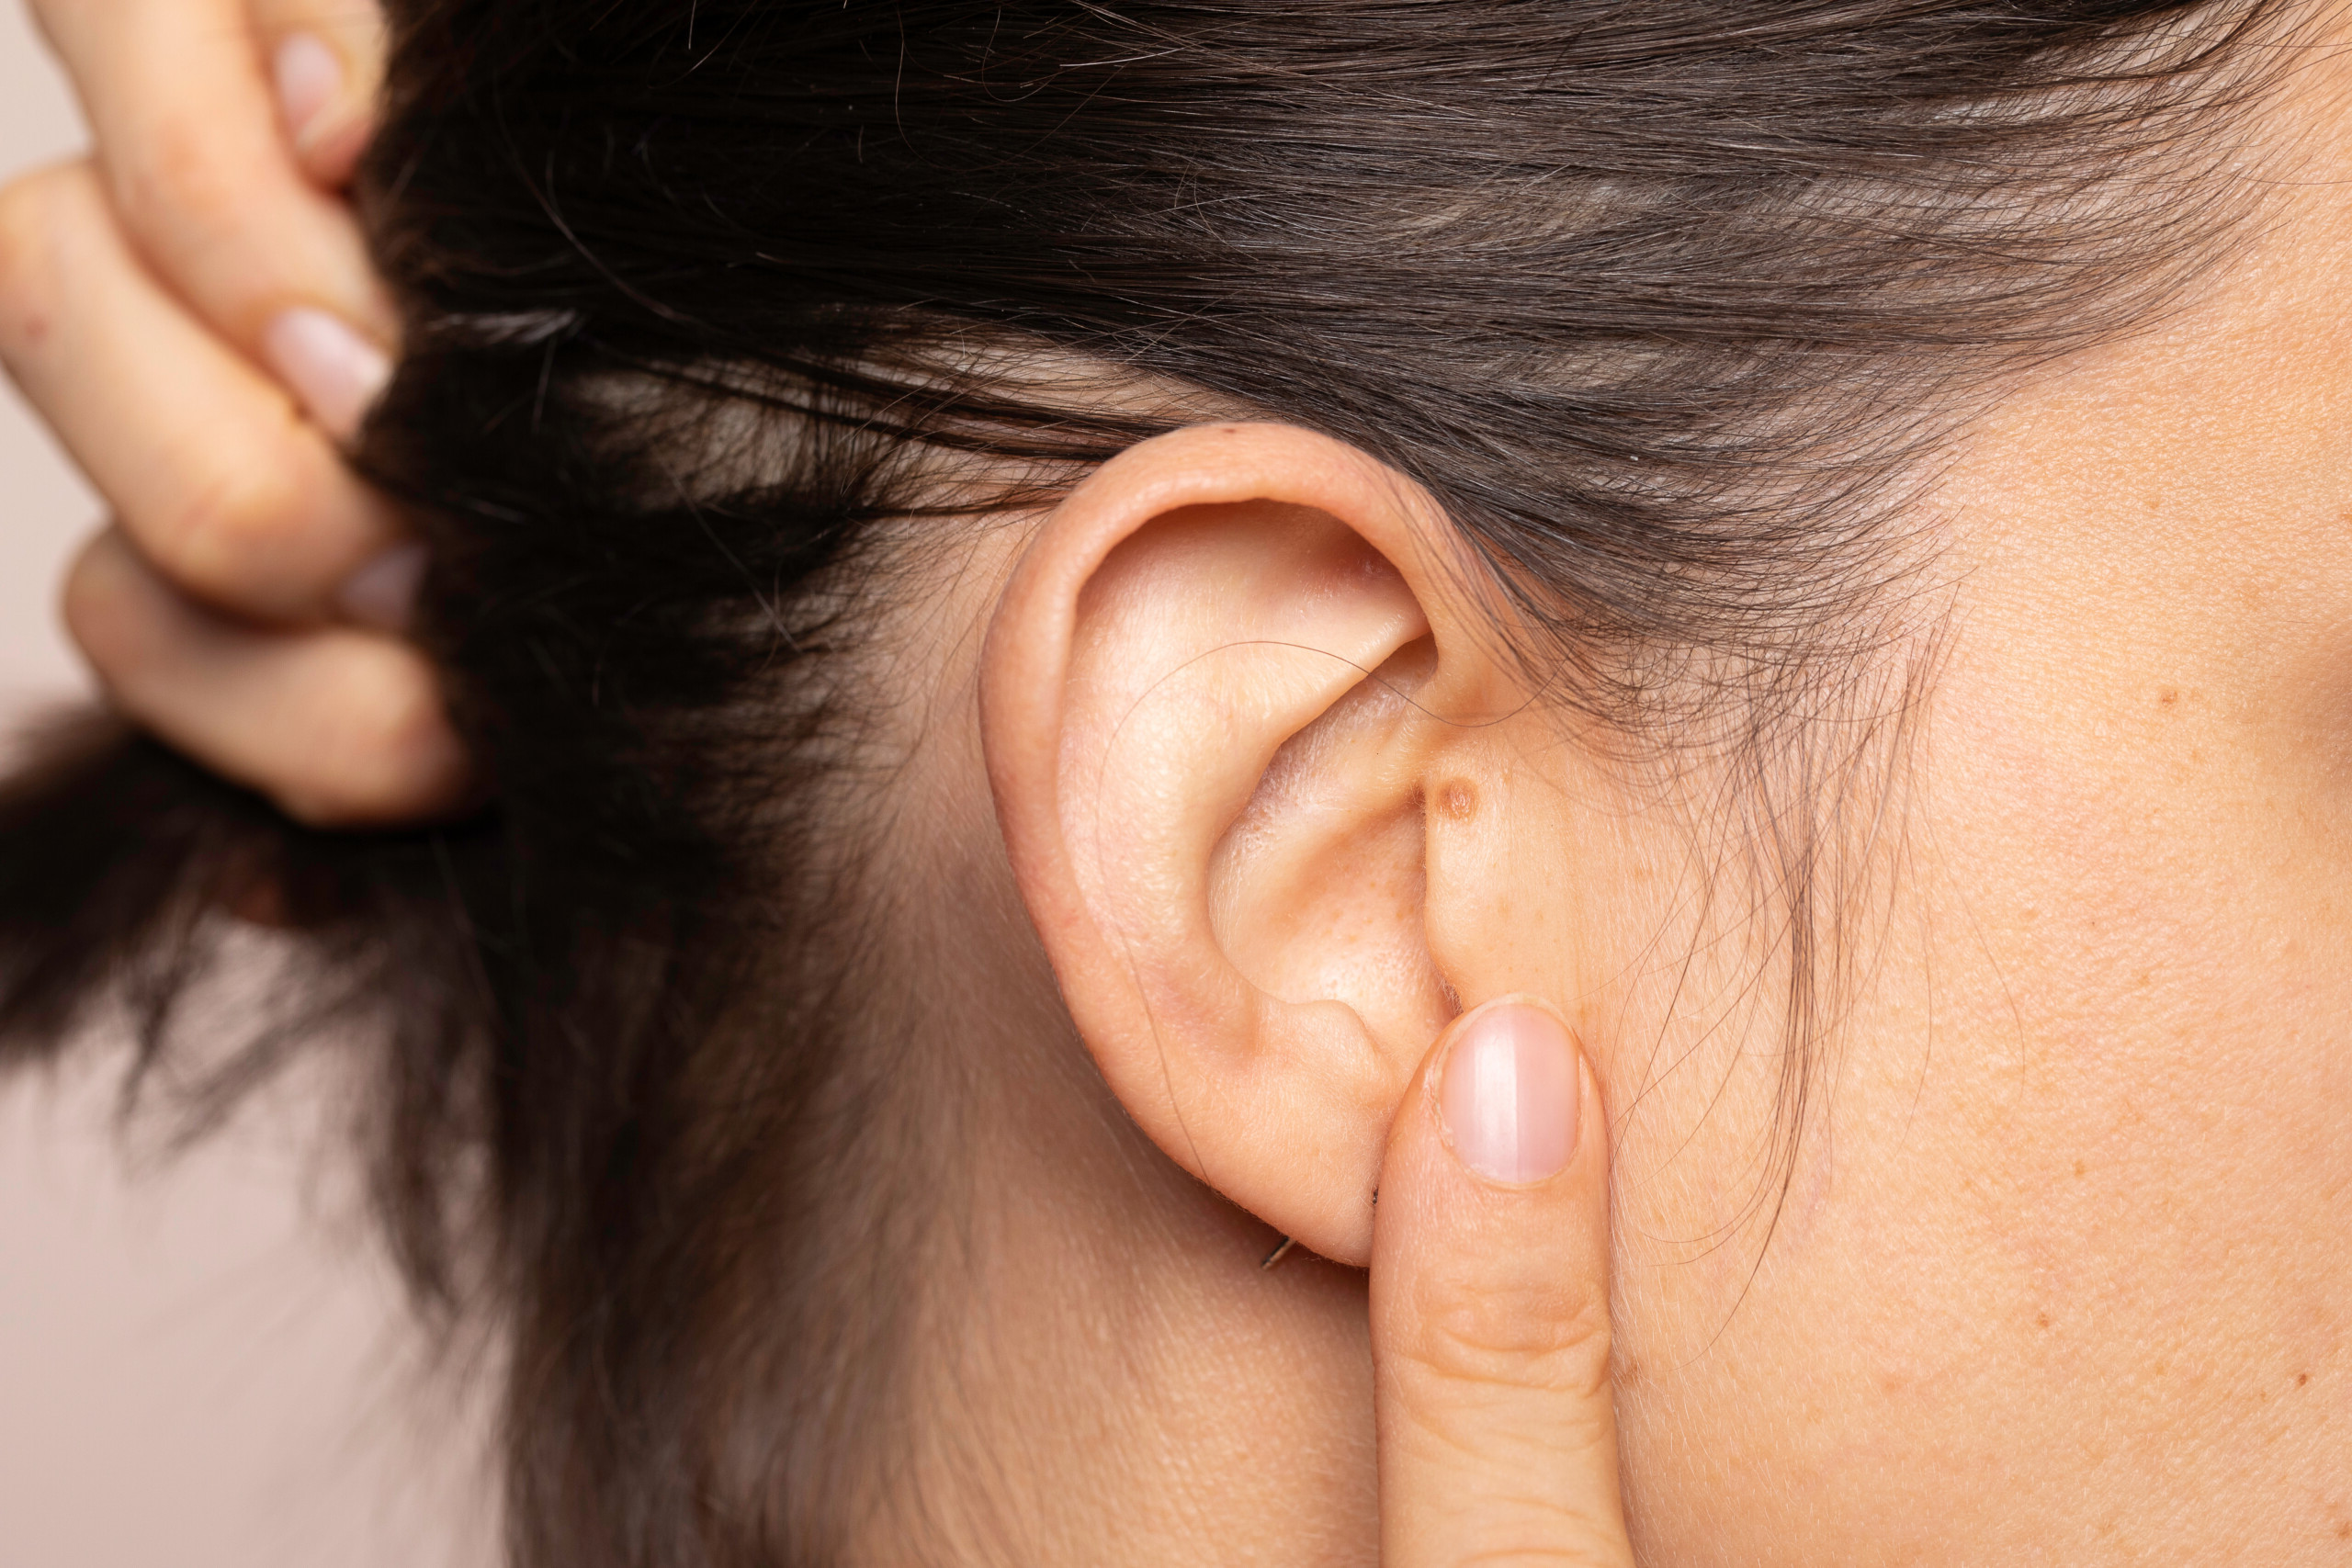 Why Is Tinnitus Quieter in the Morning?